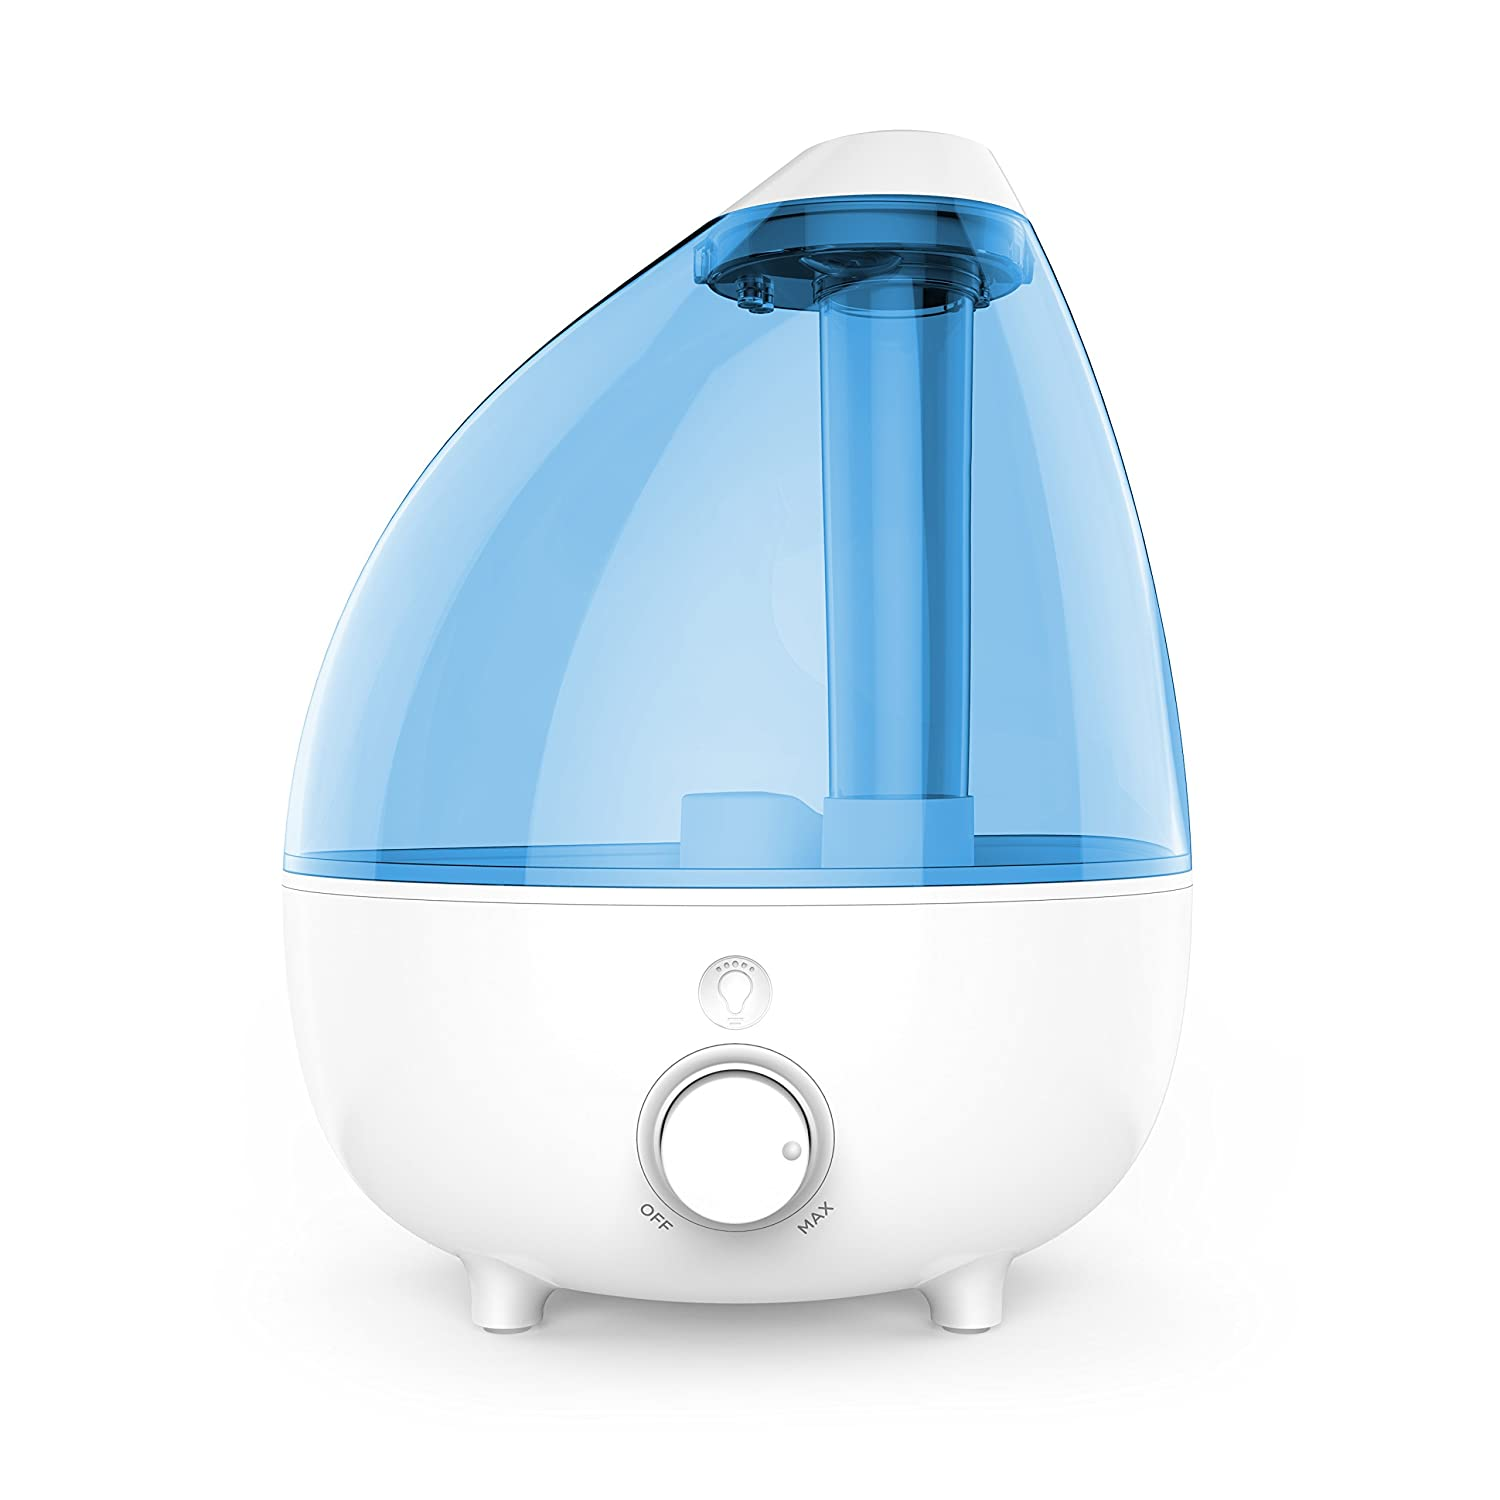 MistAire XL Ultrasonic Cool Mist Humidifier Review